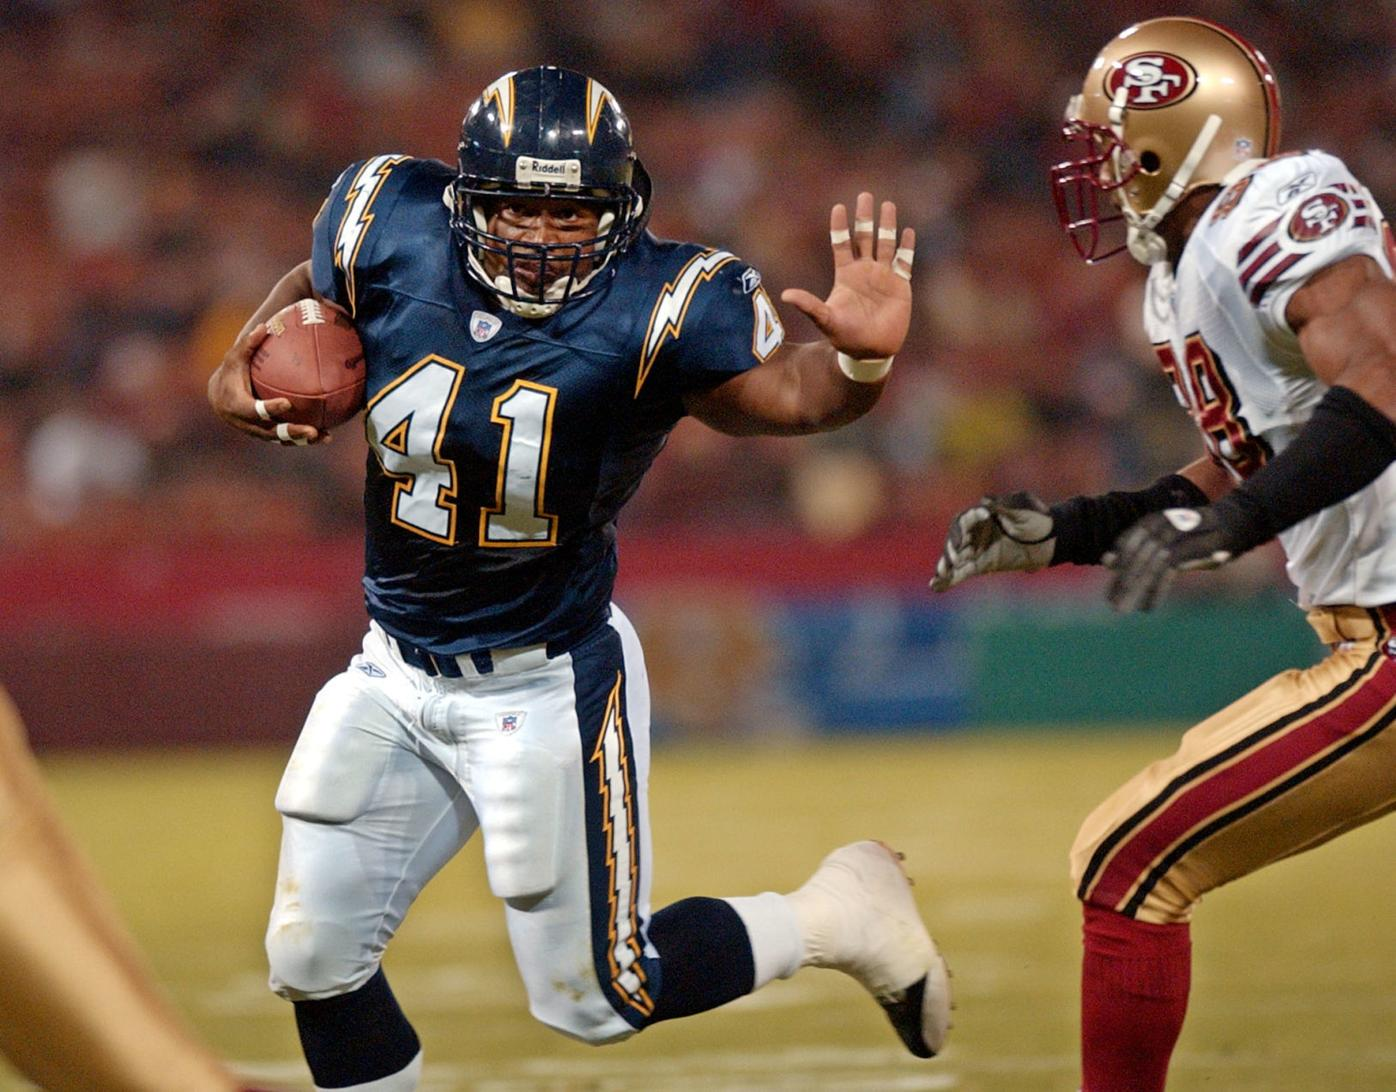 Lemoore High alum Lorenzo Neal nominated for Pro Football Hall of Fame Class of 2020